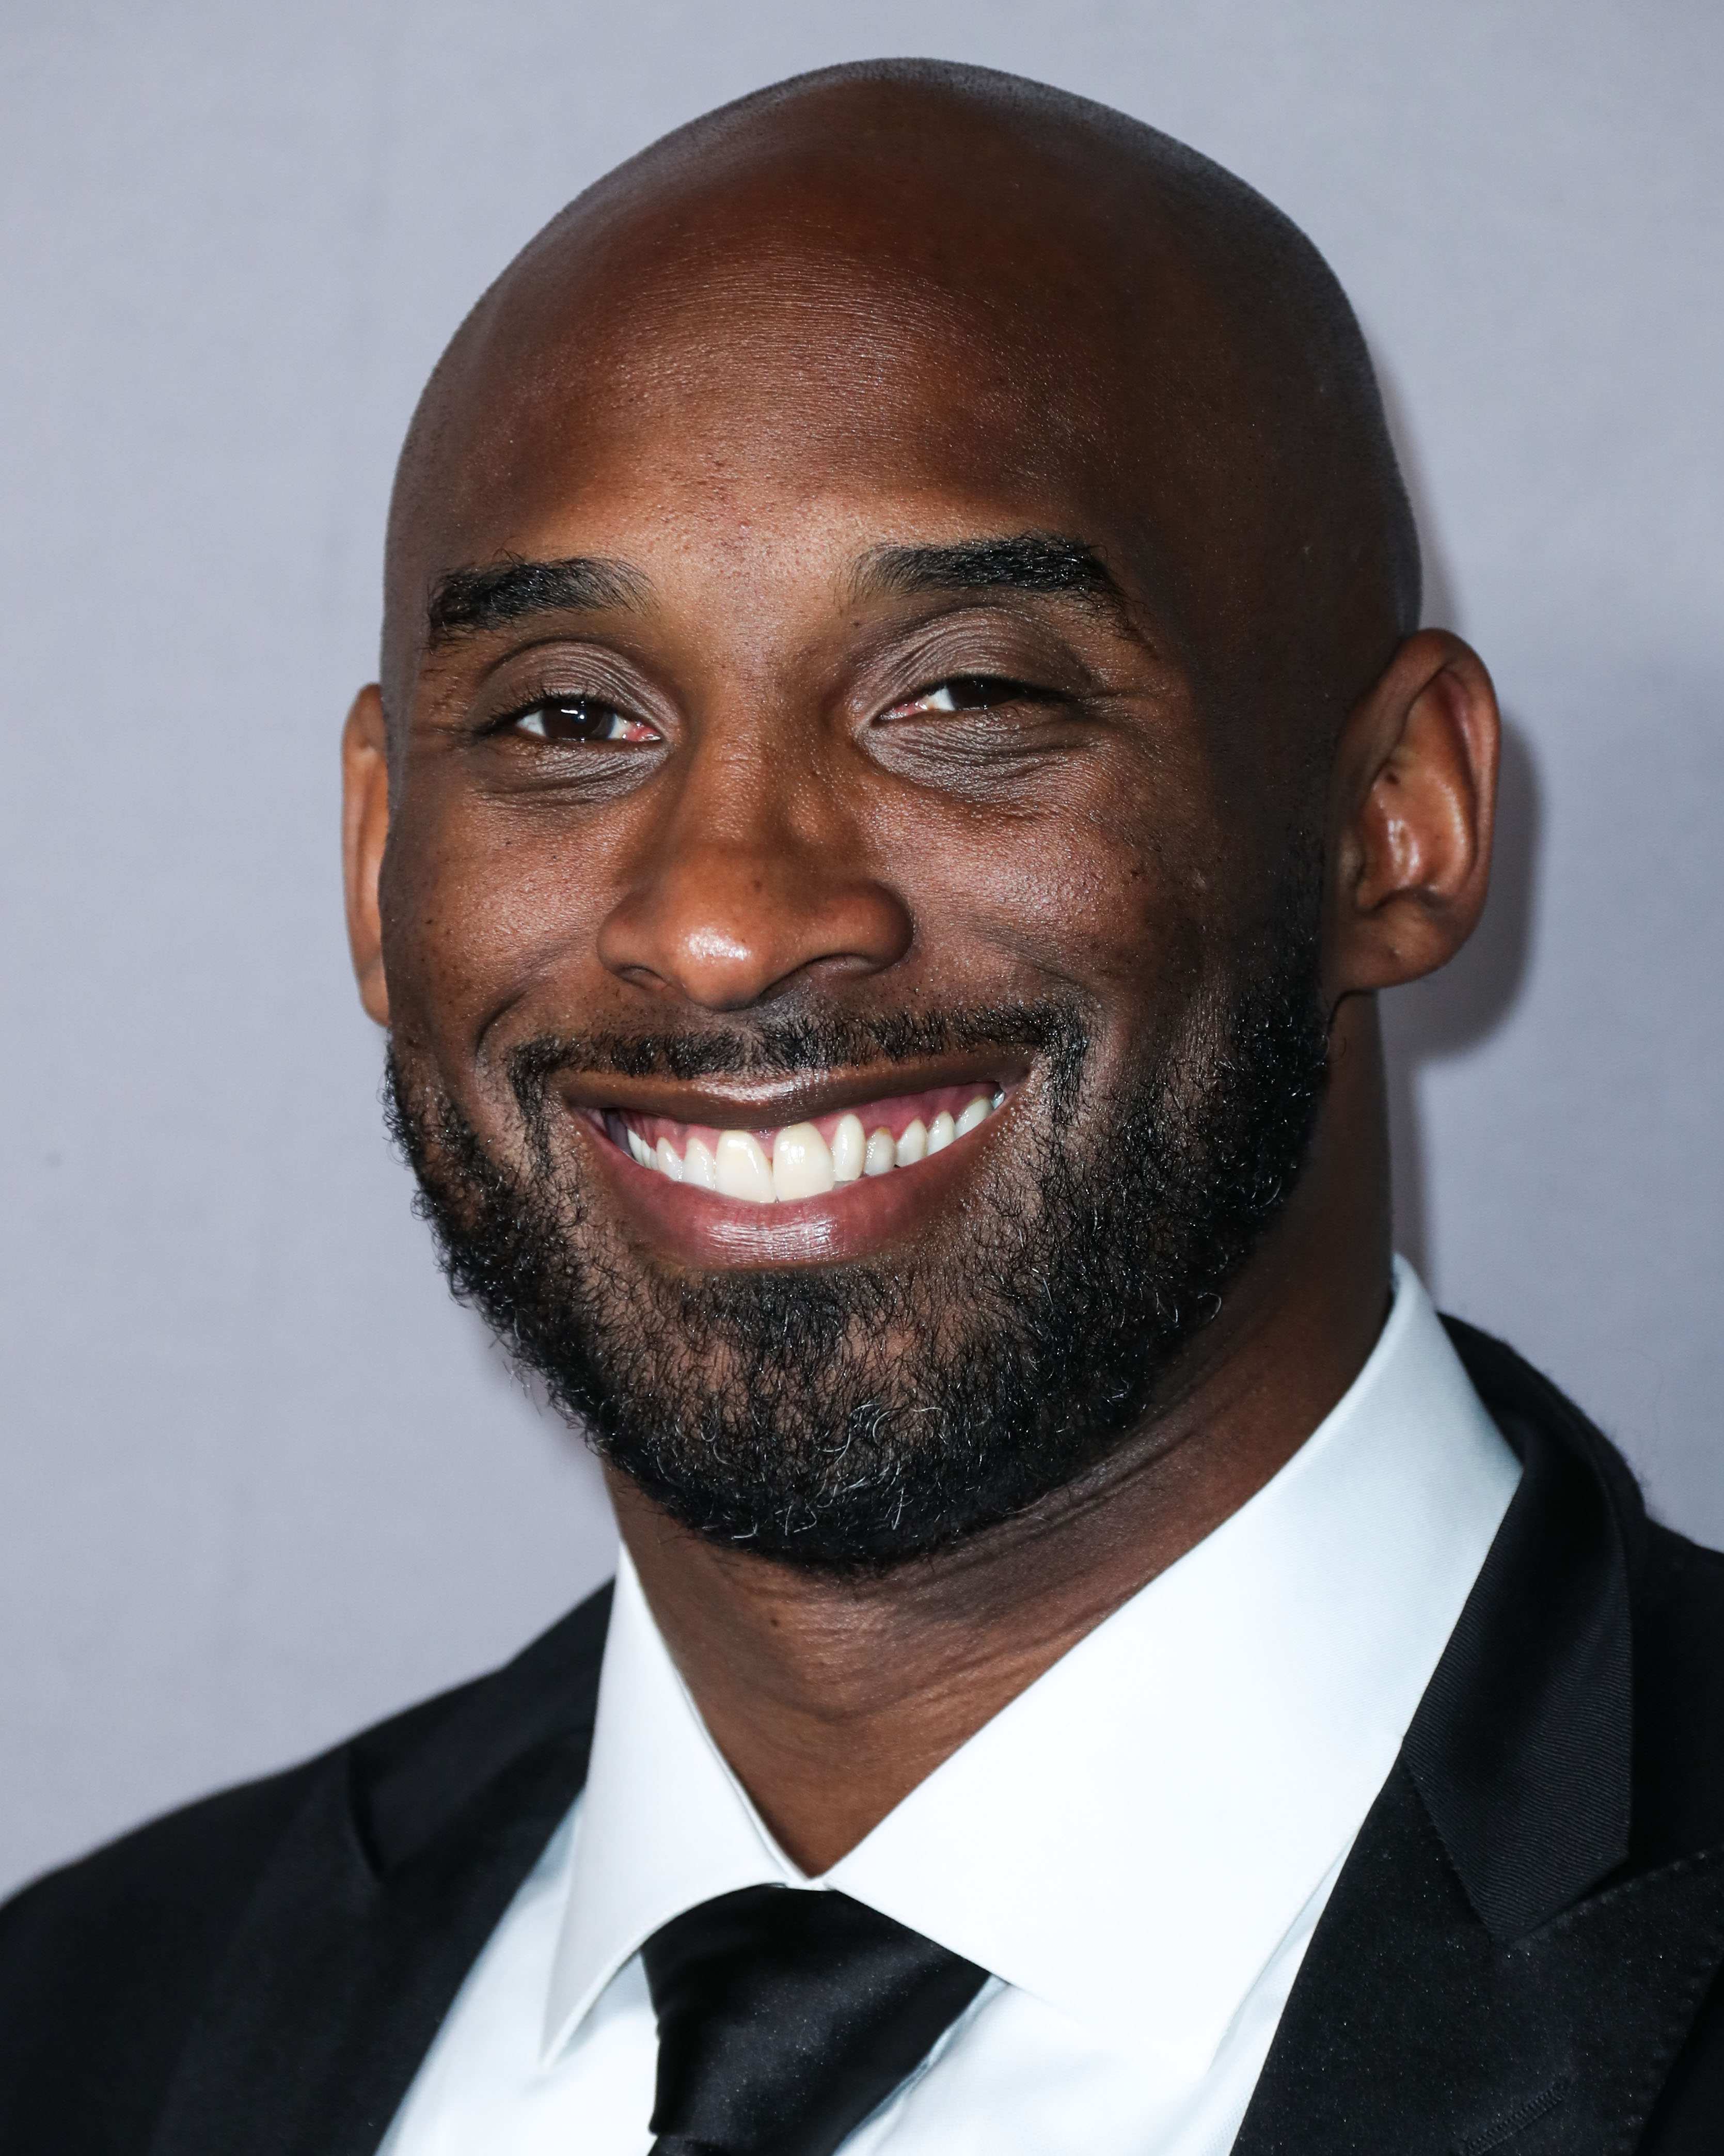 Kobe Bryant arrives at the 2019 Baby2Baby Gala held at 3Labs on November 9, 2019 in Culver City, Los Angeles, California, United States.